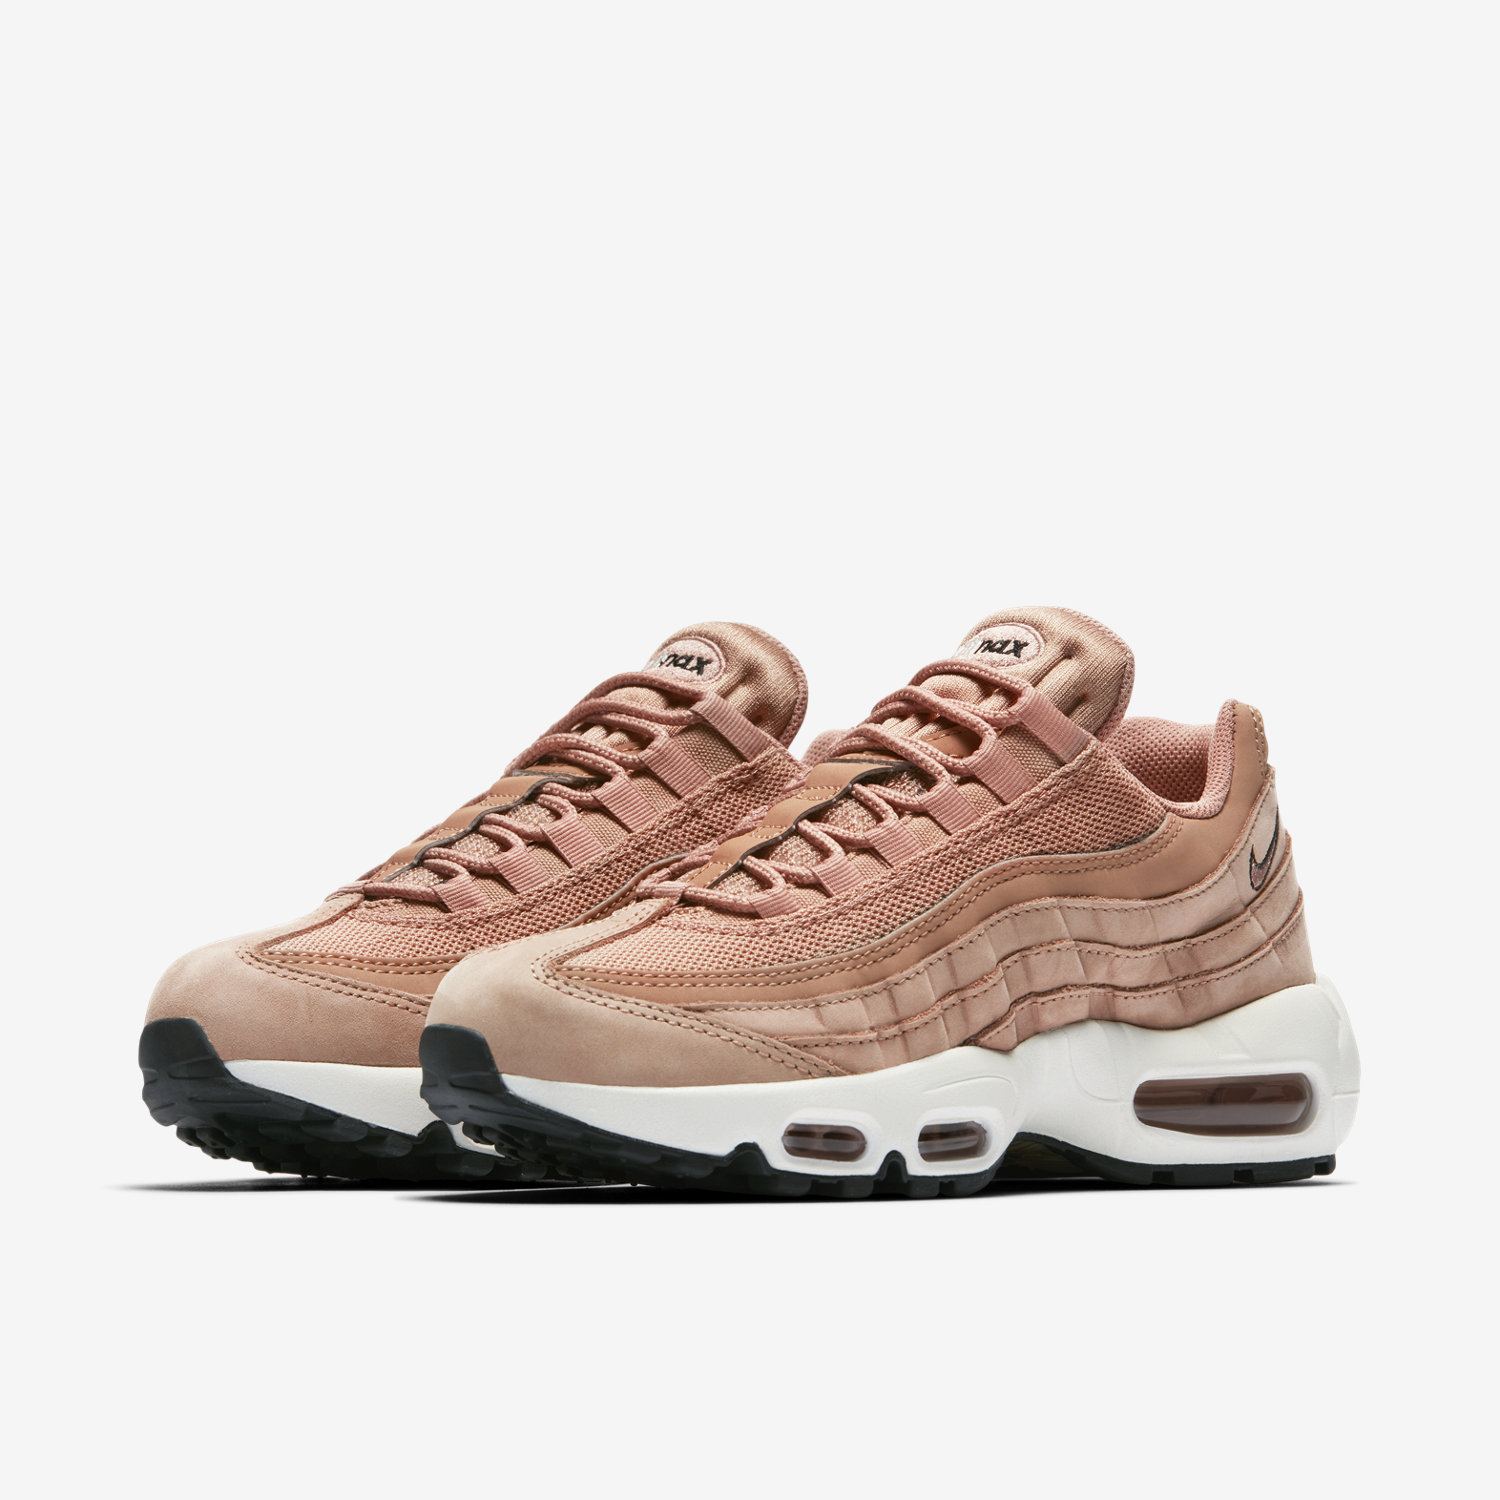 nike air max 95 femme bordeaux. Black Bedroom Furniture Sets. Home Design Ideas